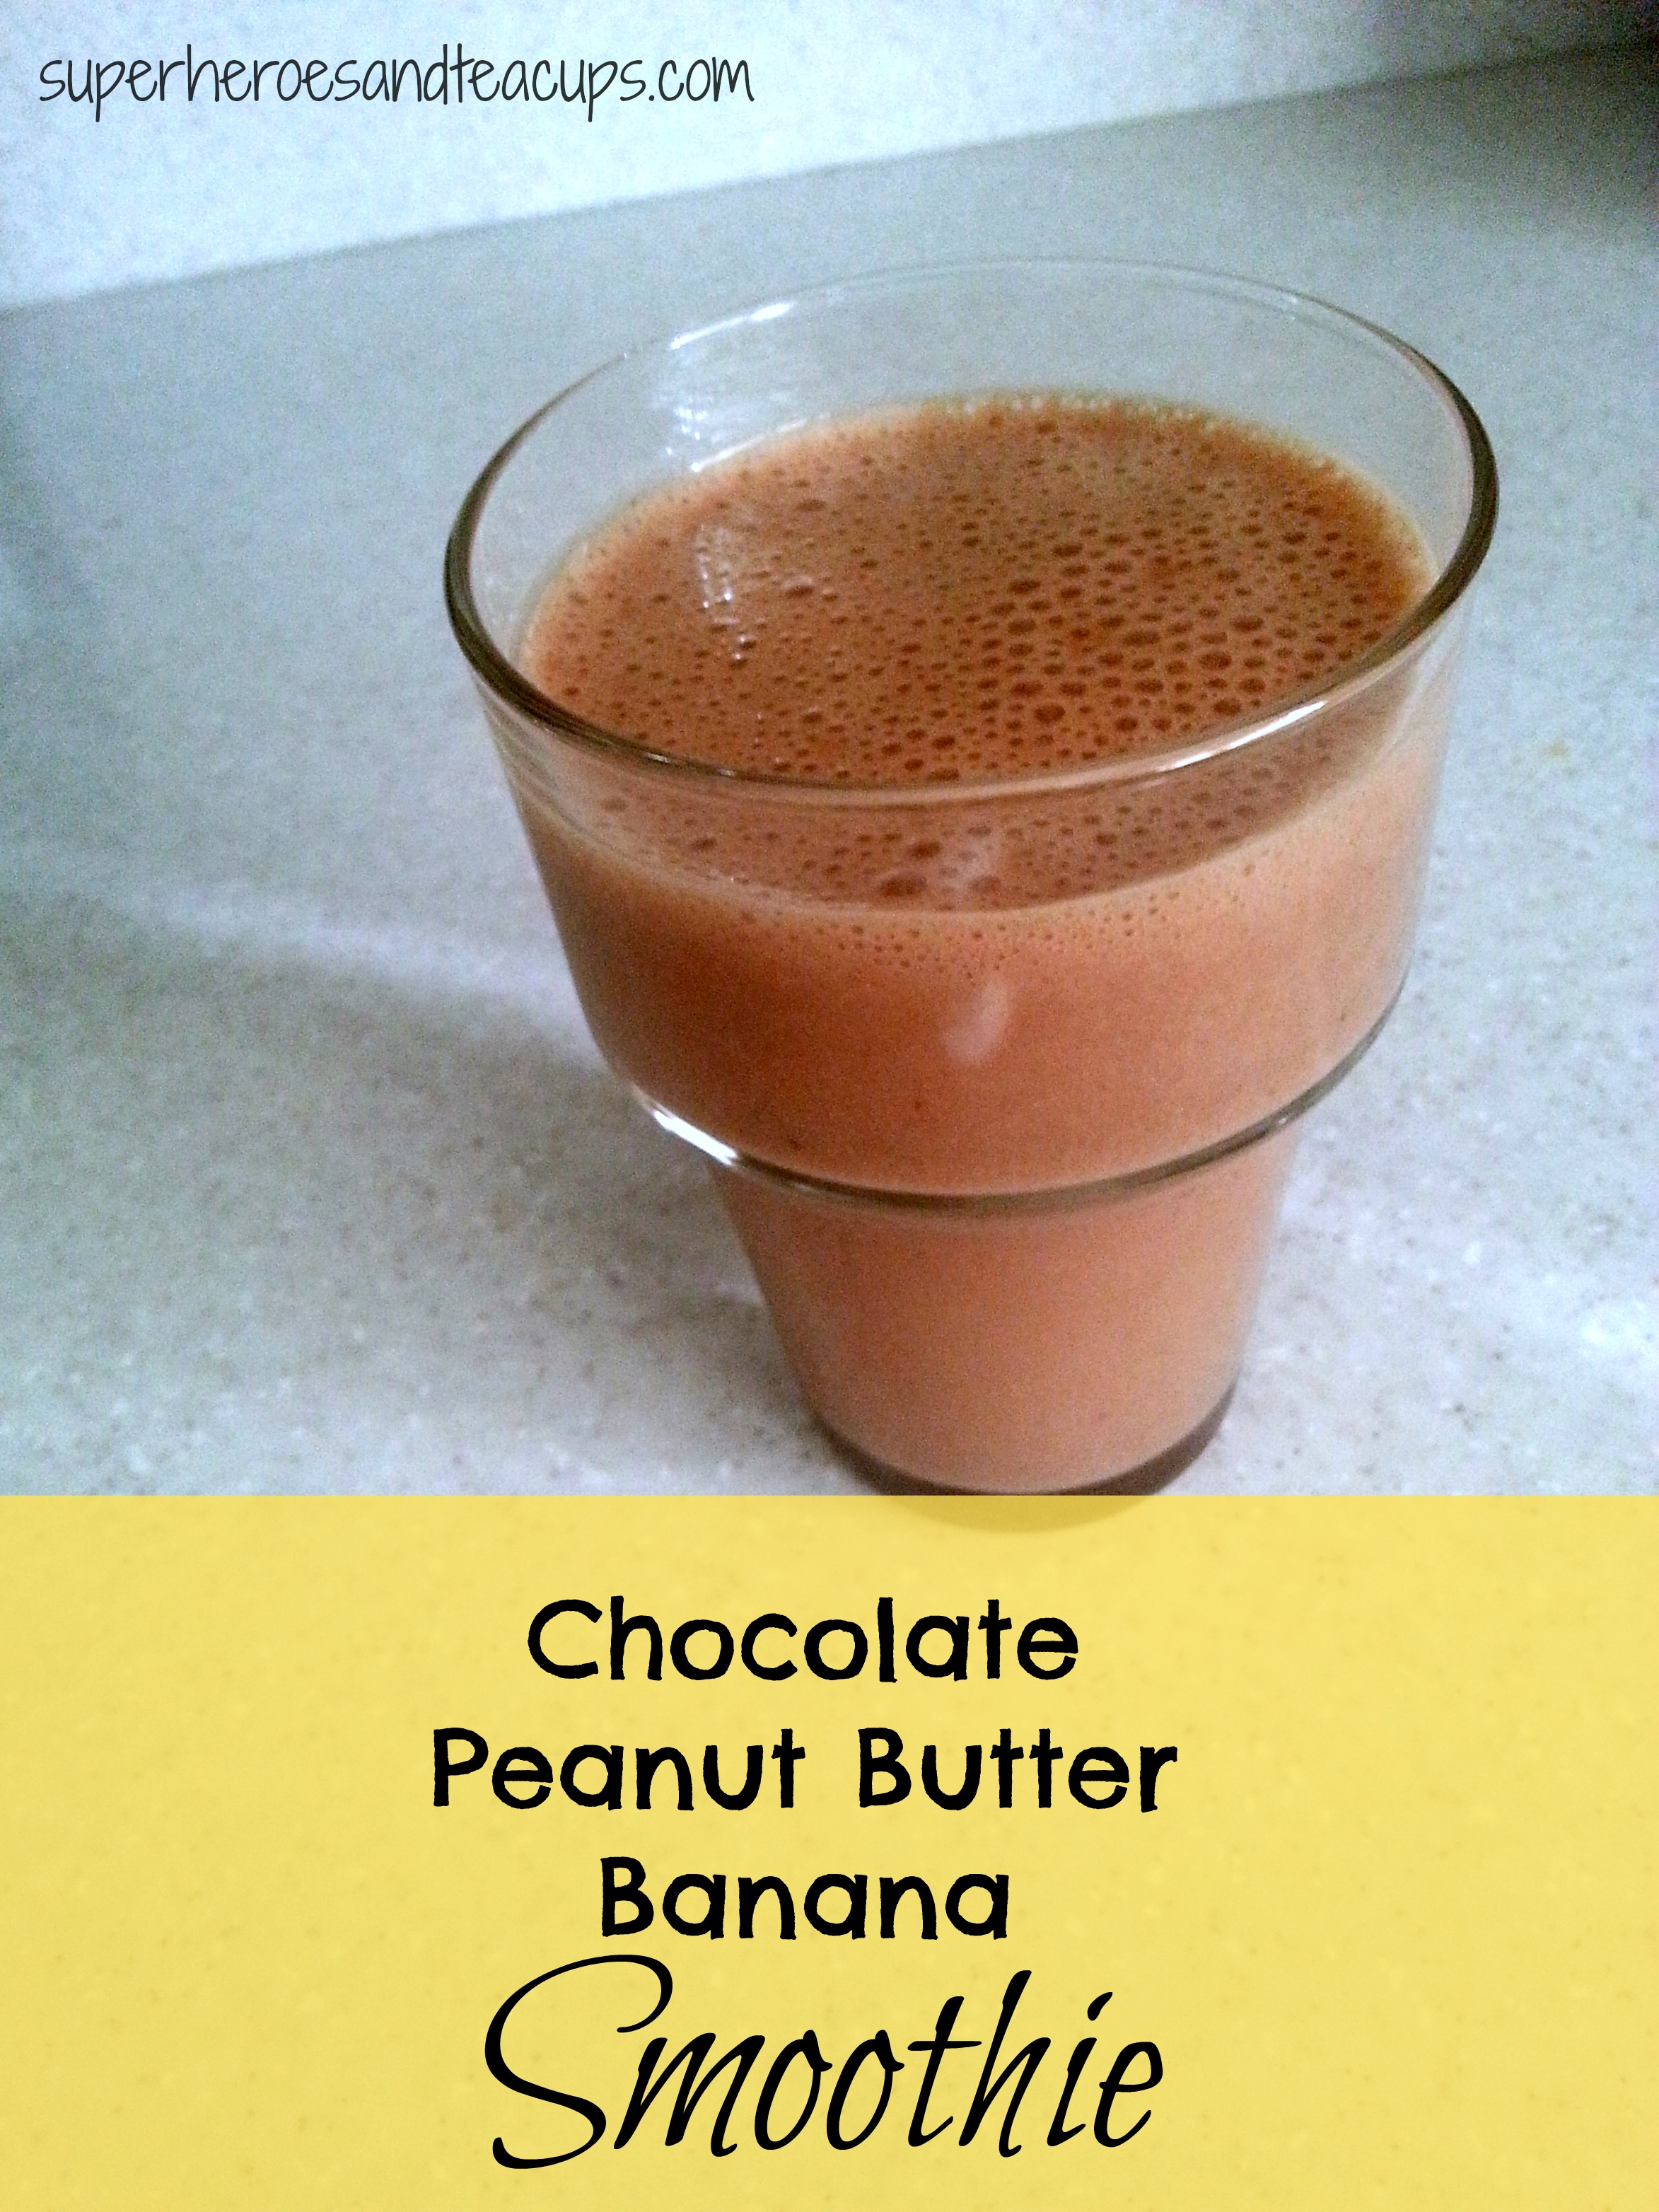 Chocolate Peanut Butter Banana Smoothie Recipe - Superheroes and ...